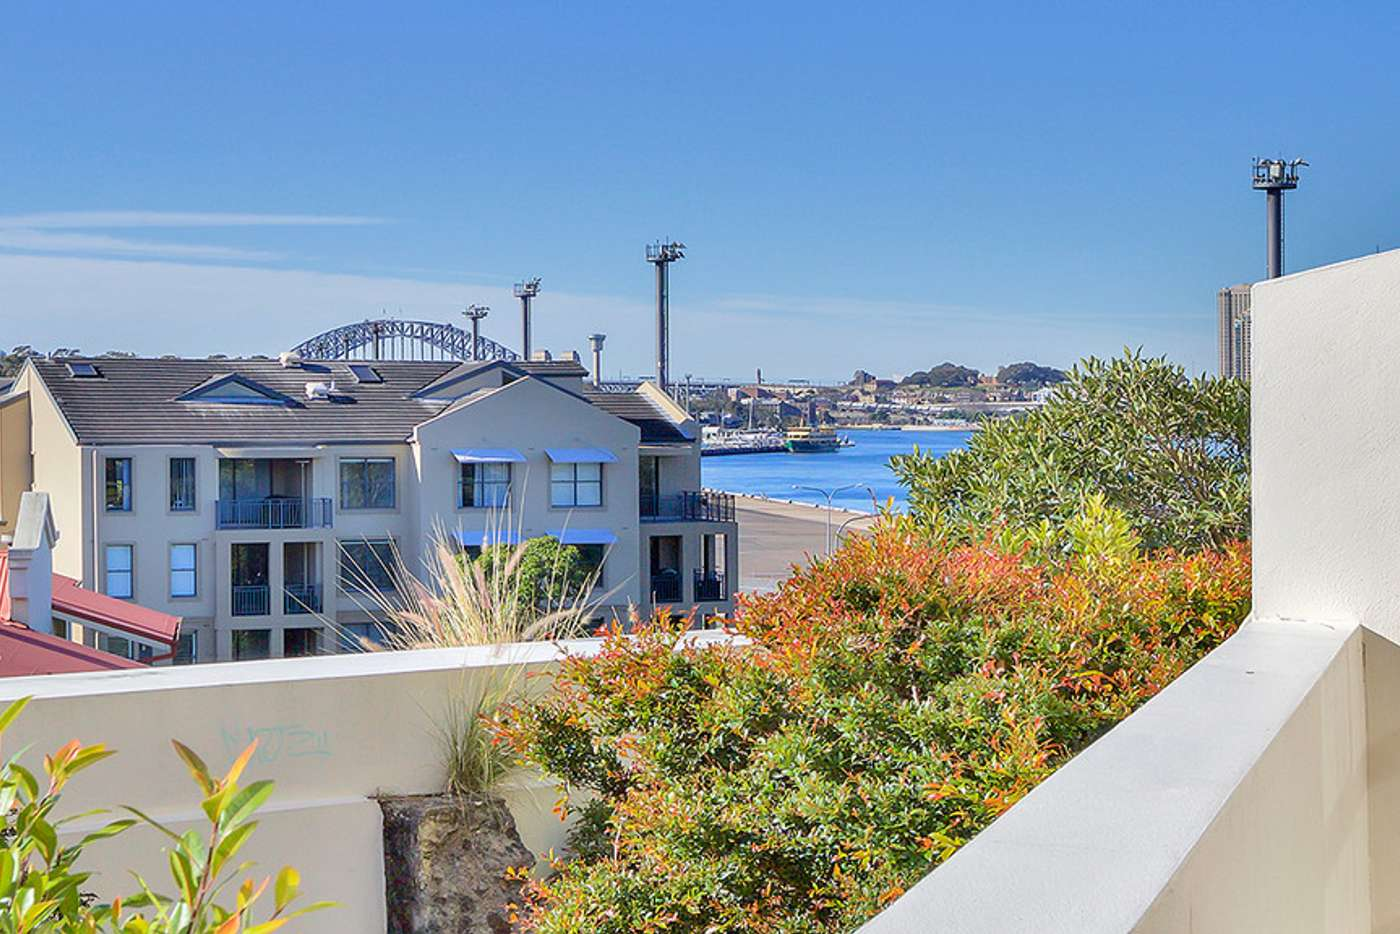 Main view of Homely apartment listing, 18/1 Batty Street, Rozelle NSW 2039